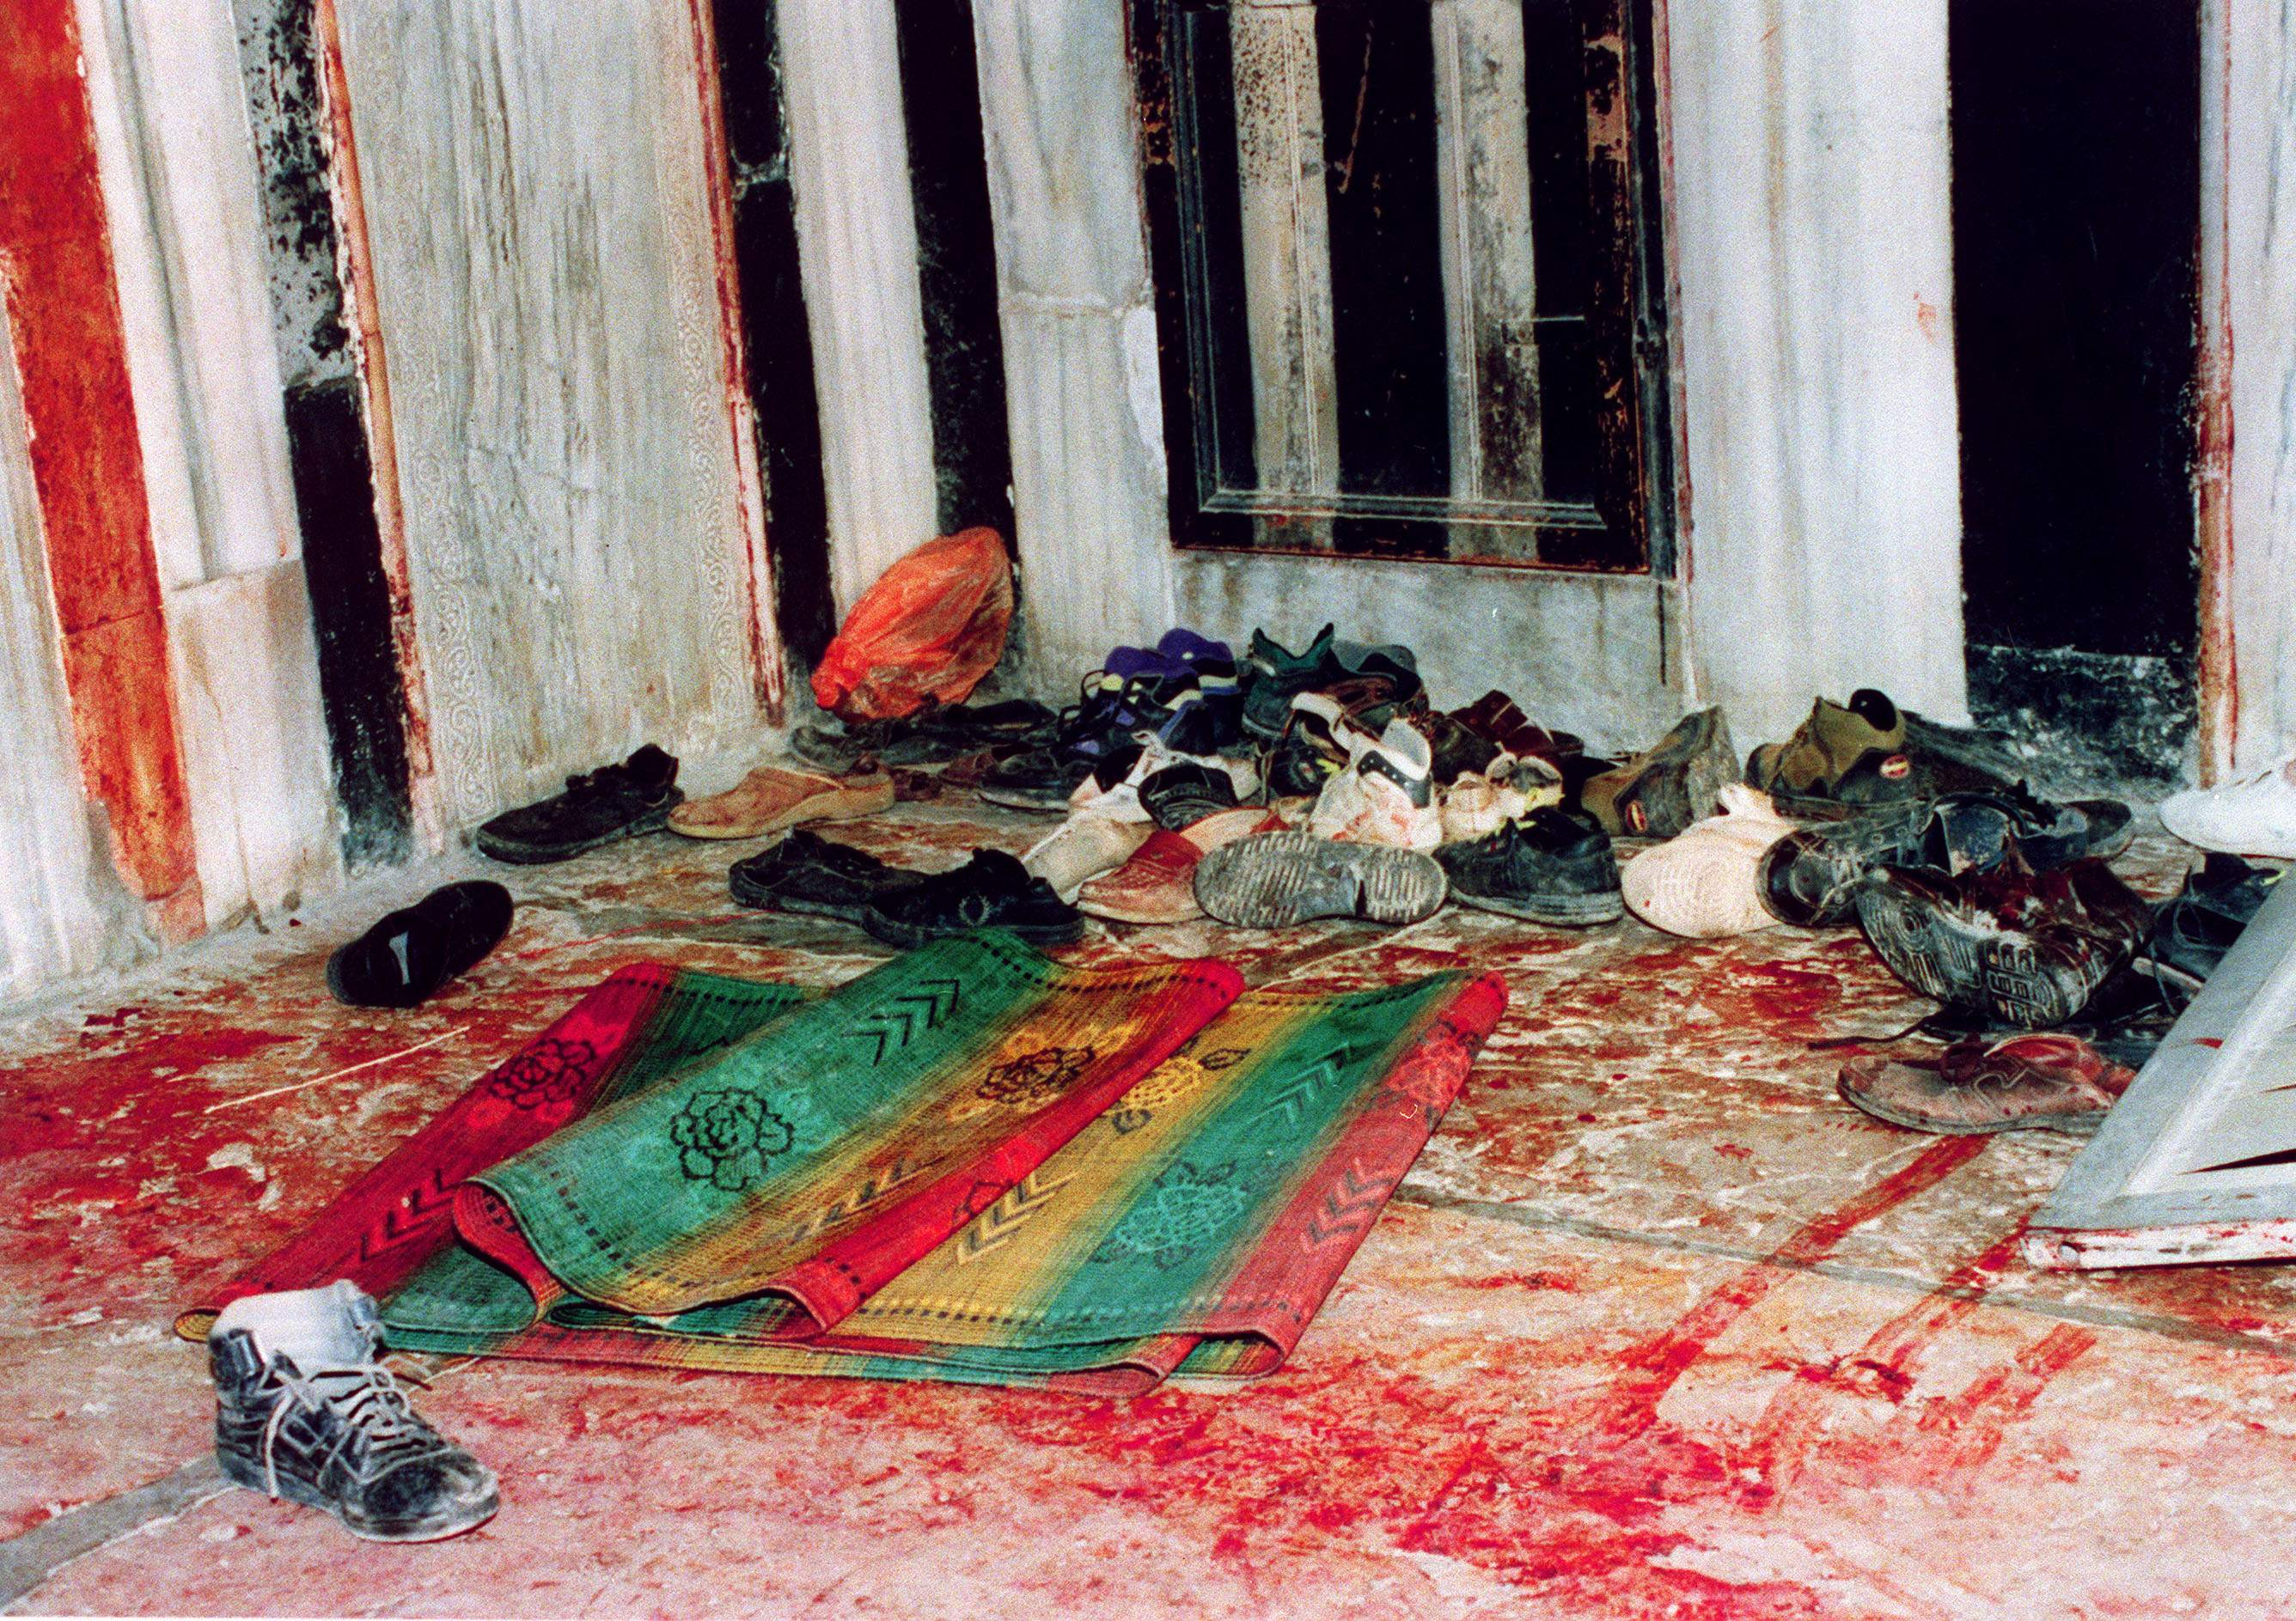 The aftermath of the Ibrahimi mosque massacre Hebron on 25 February 1994 (AFP)